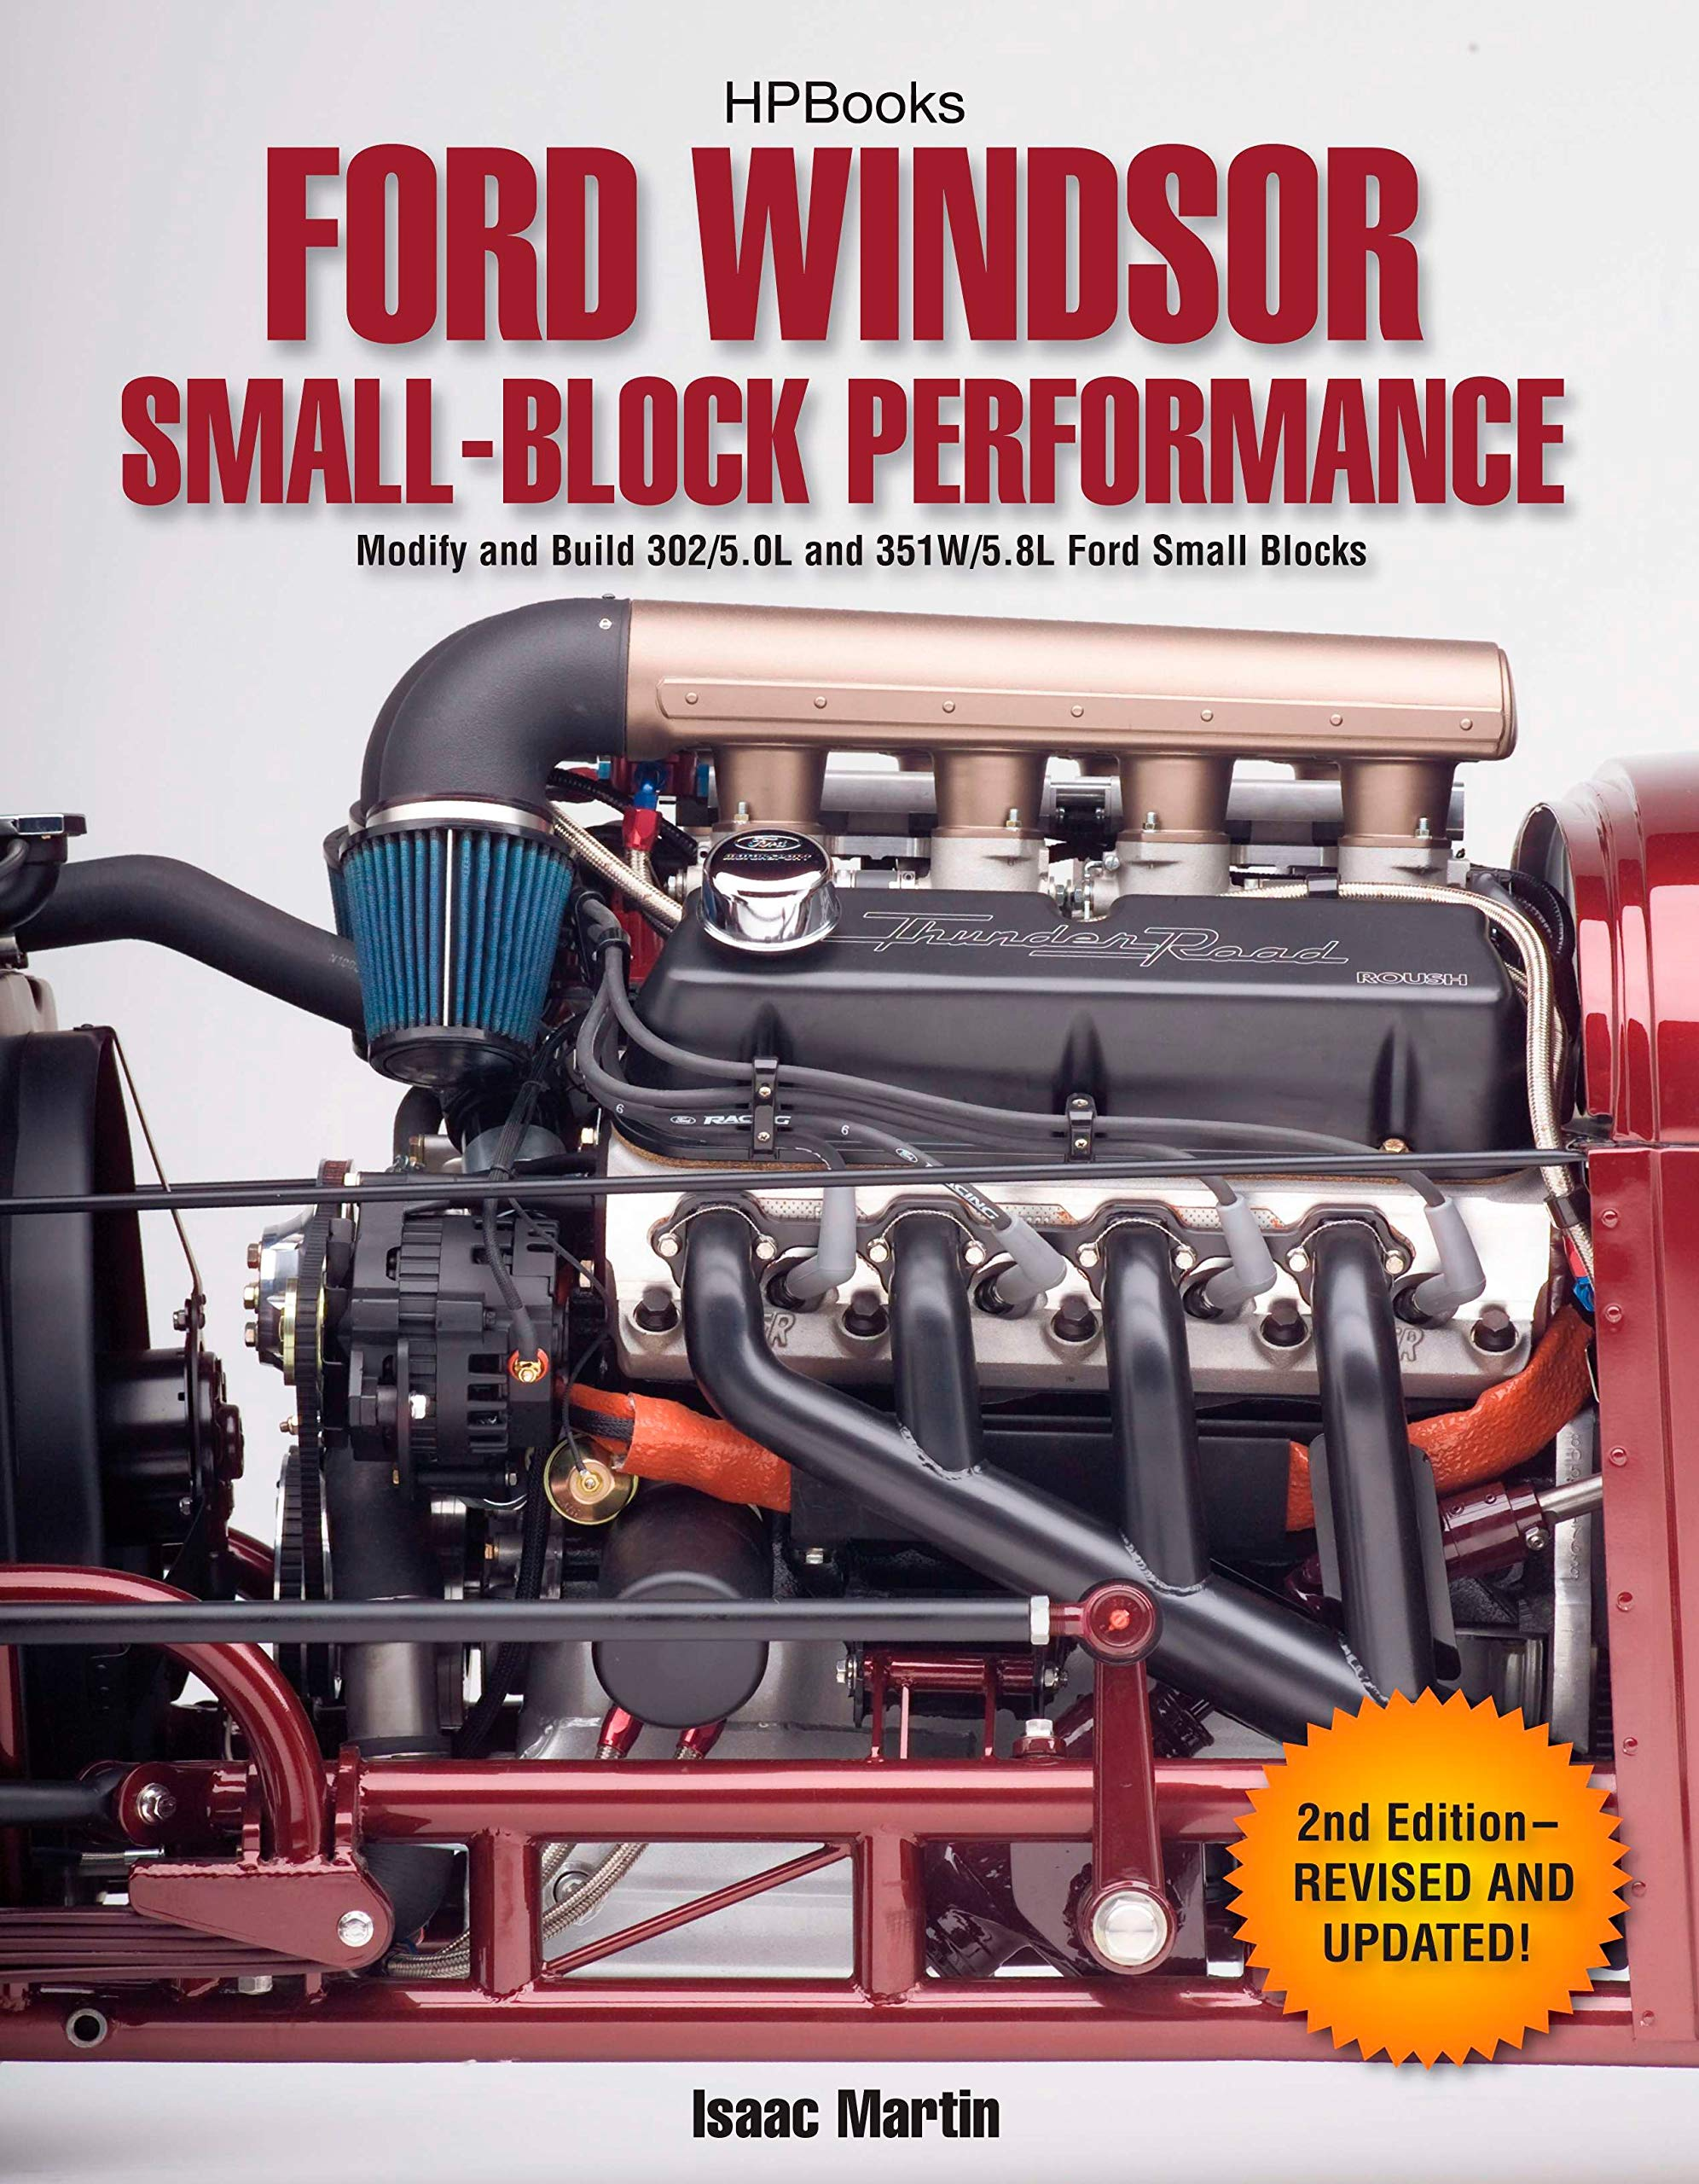 FORD WINDSOR small-block Performance-BOOK hp1558